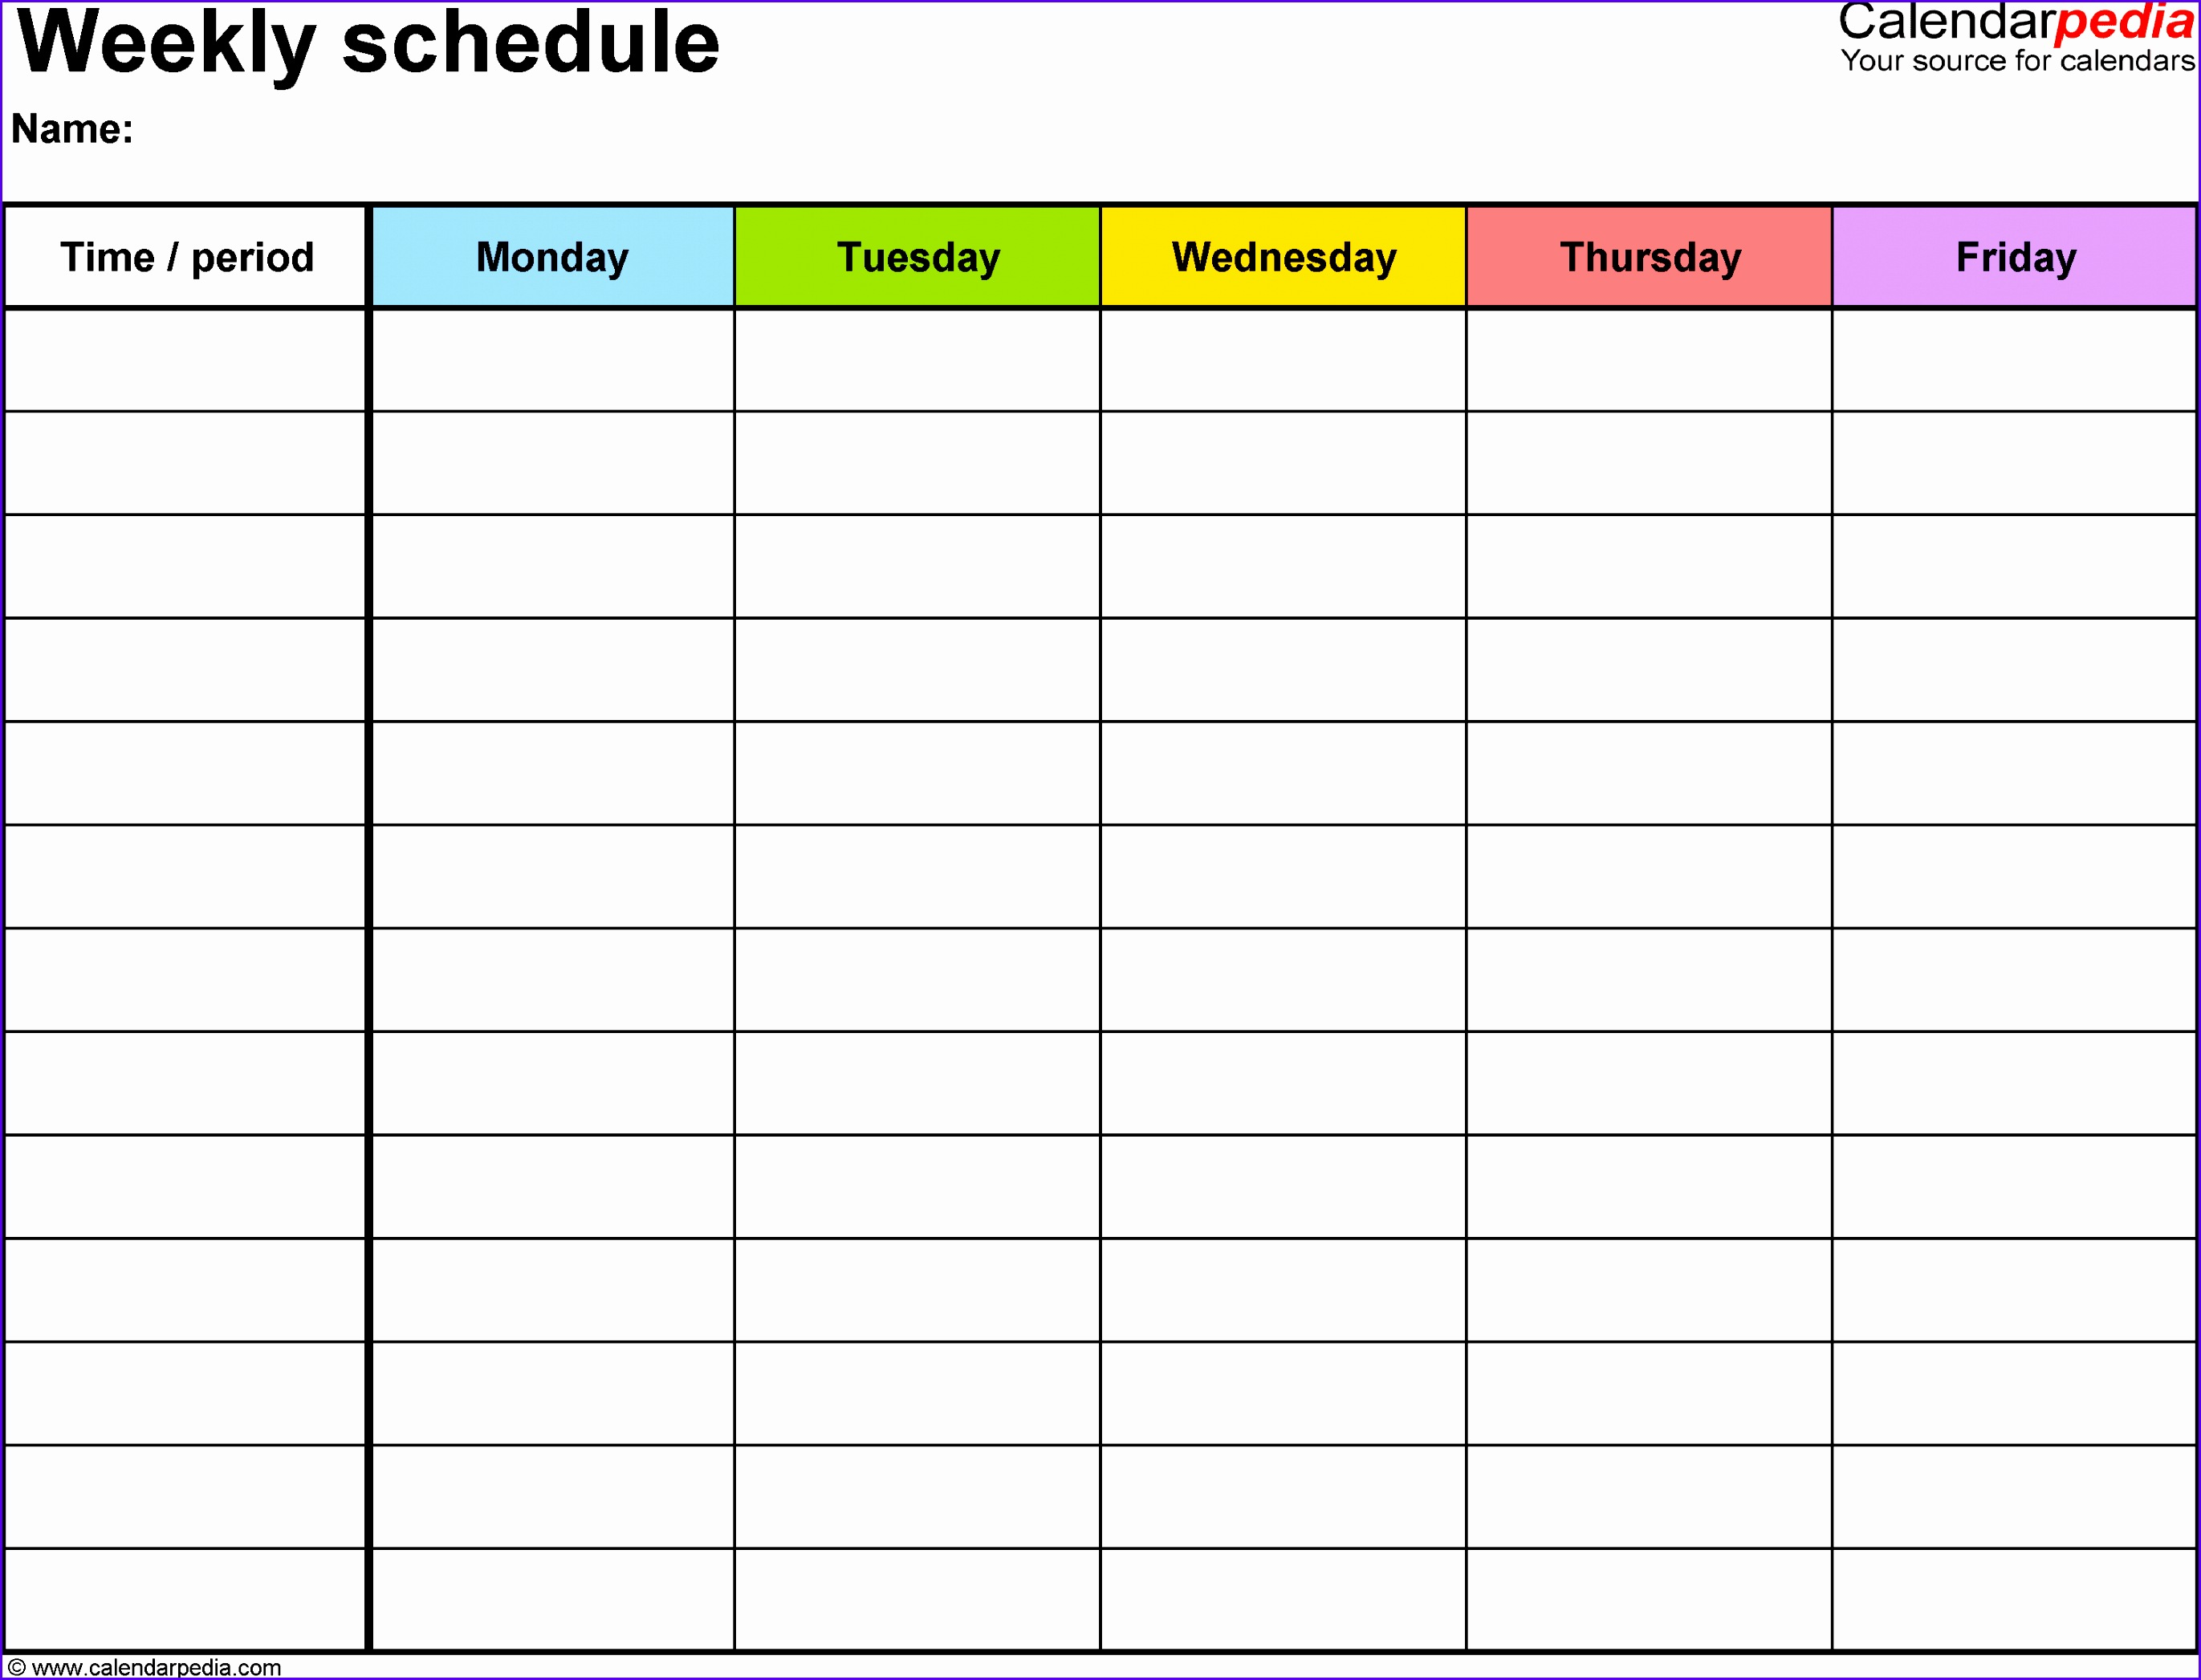 Weekly schedule template for Excel version 1 landscape 1 page Monday to Friday 27422093